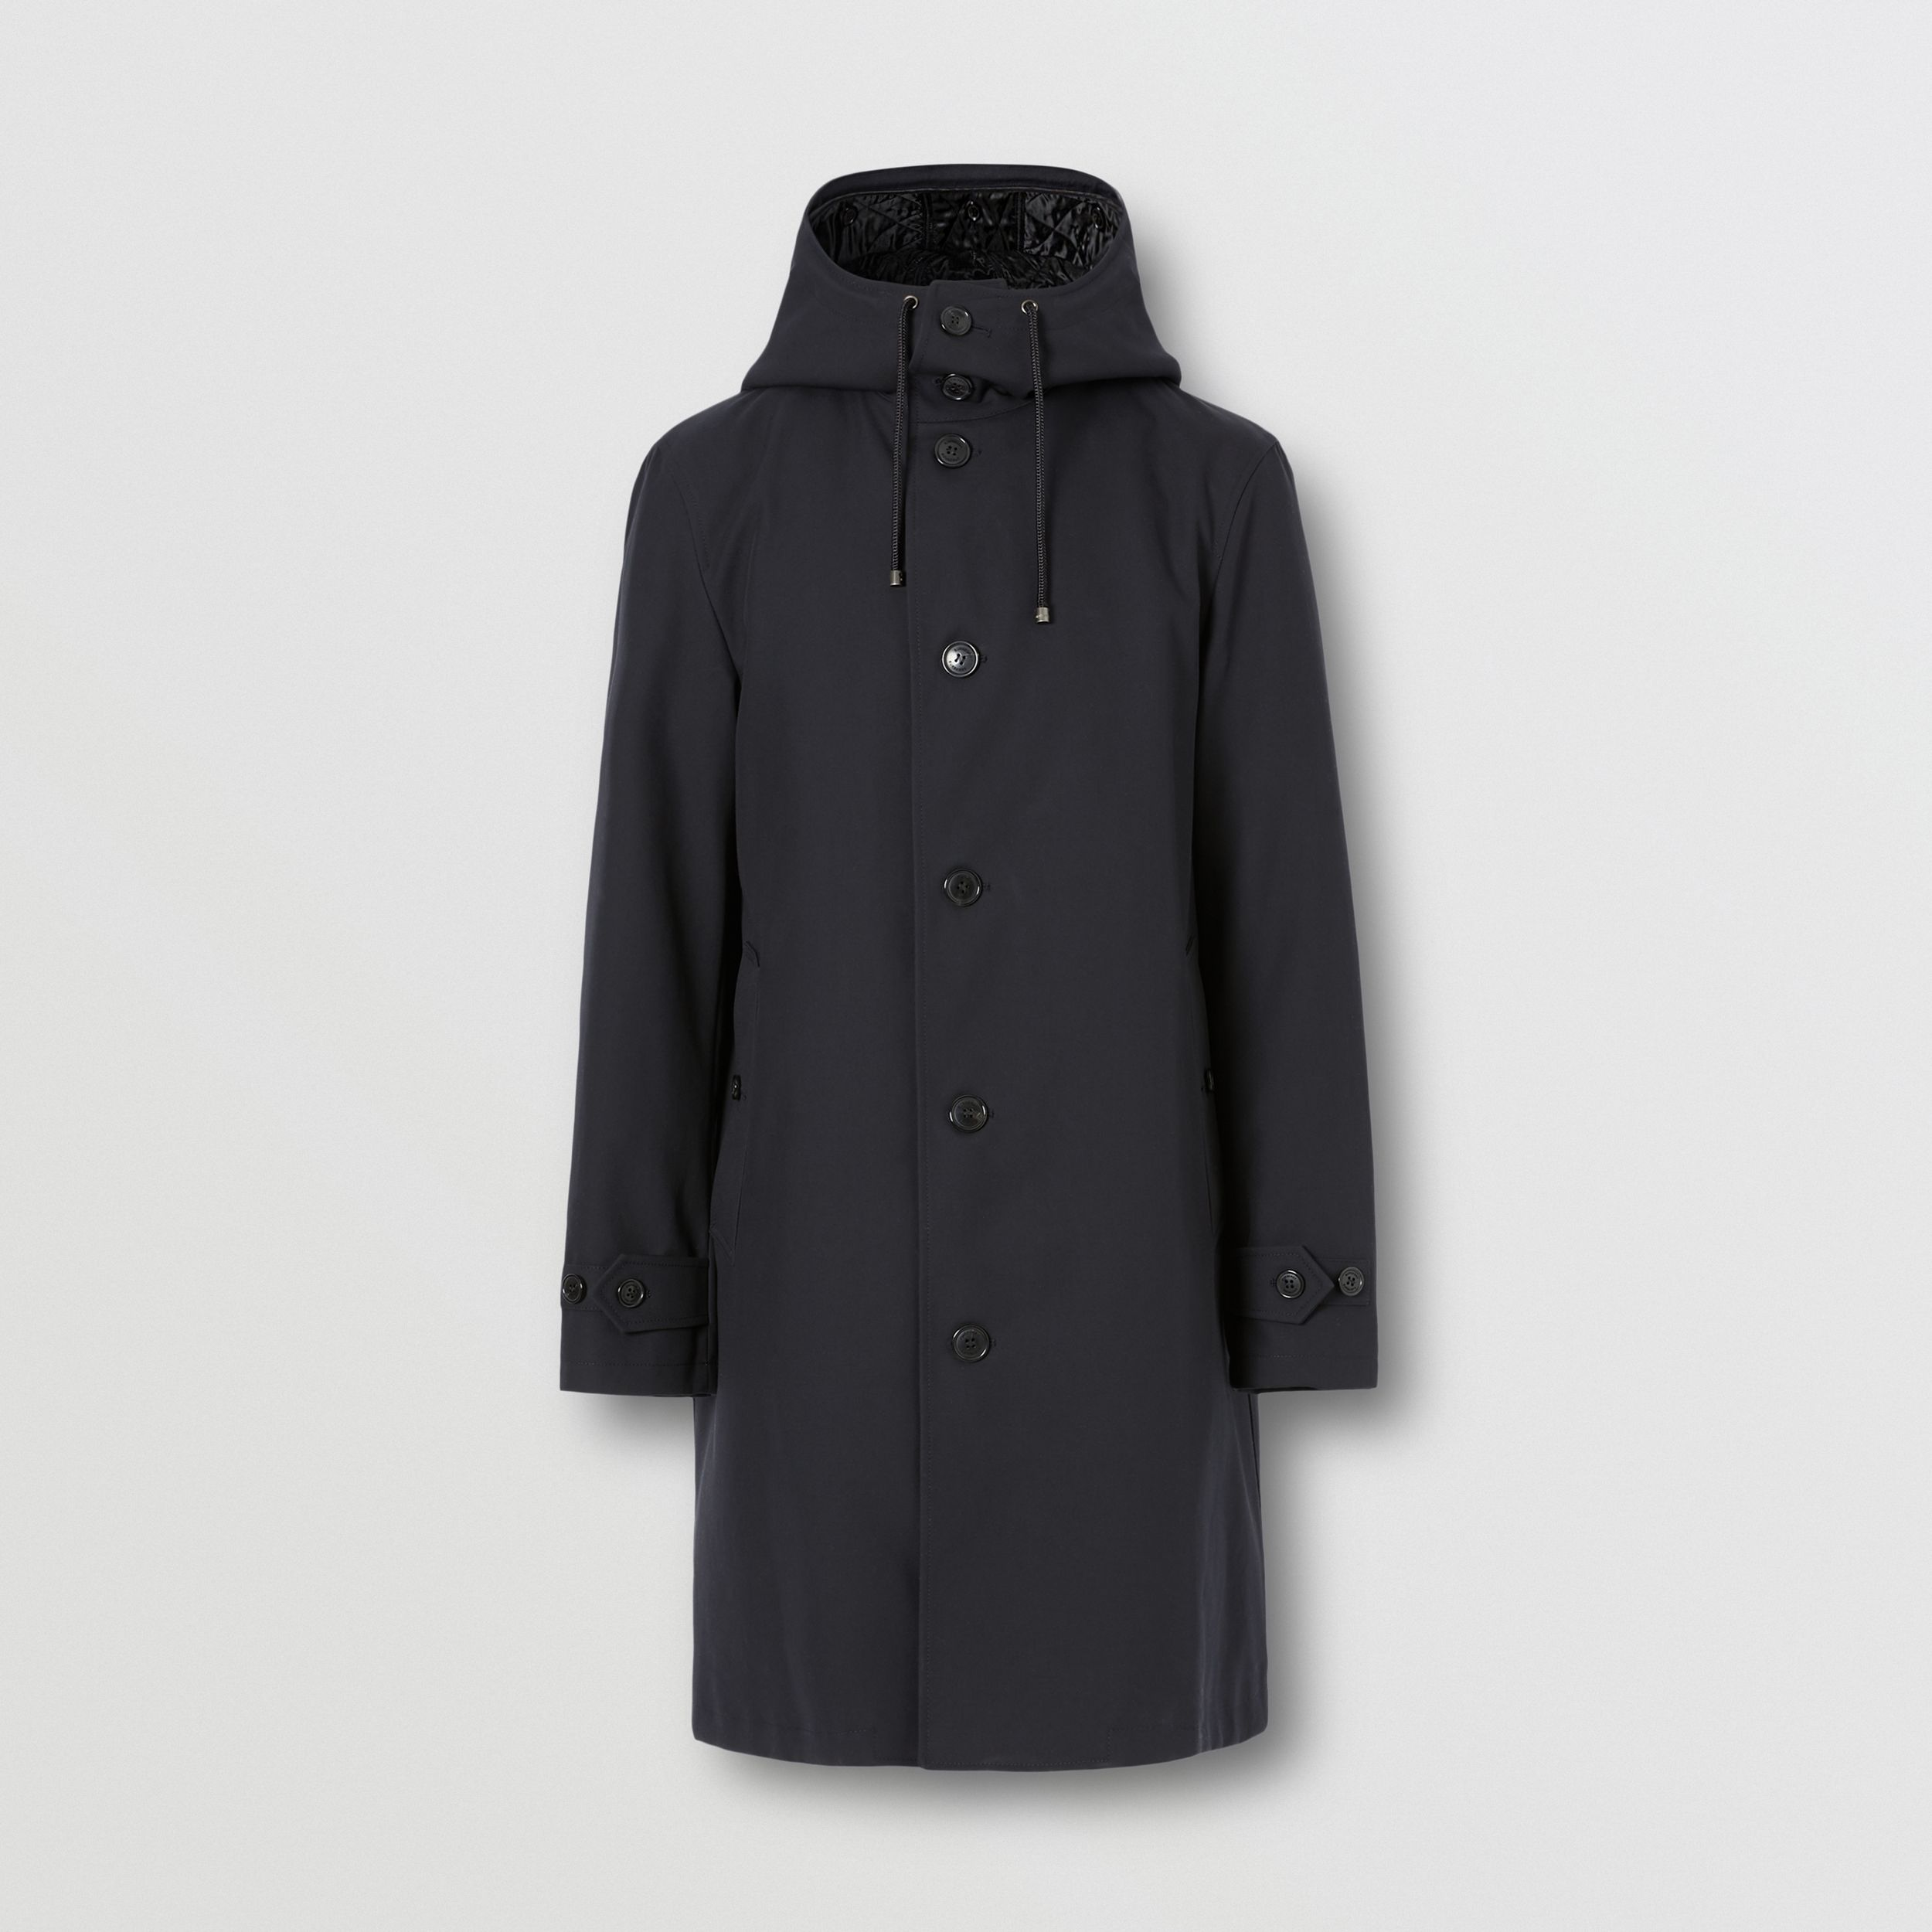 Cotton Gabardine Coat with Detachable Warmer in Midnight - Men | Burberry Canada - 4